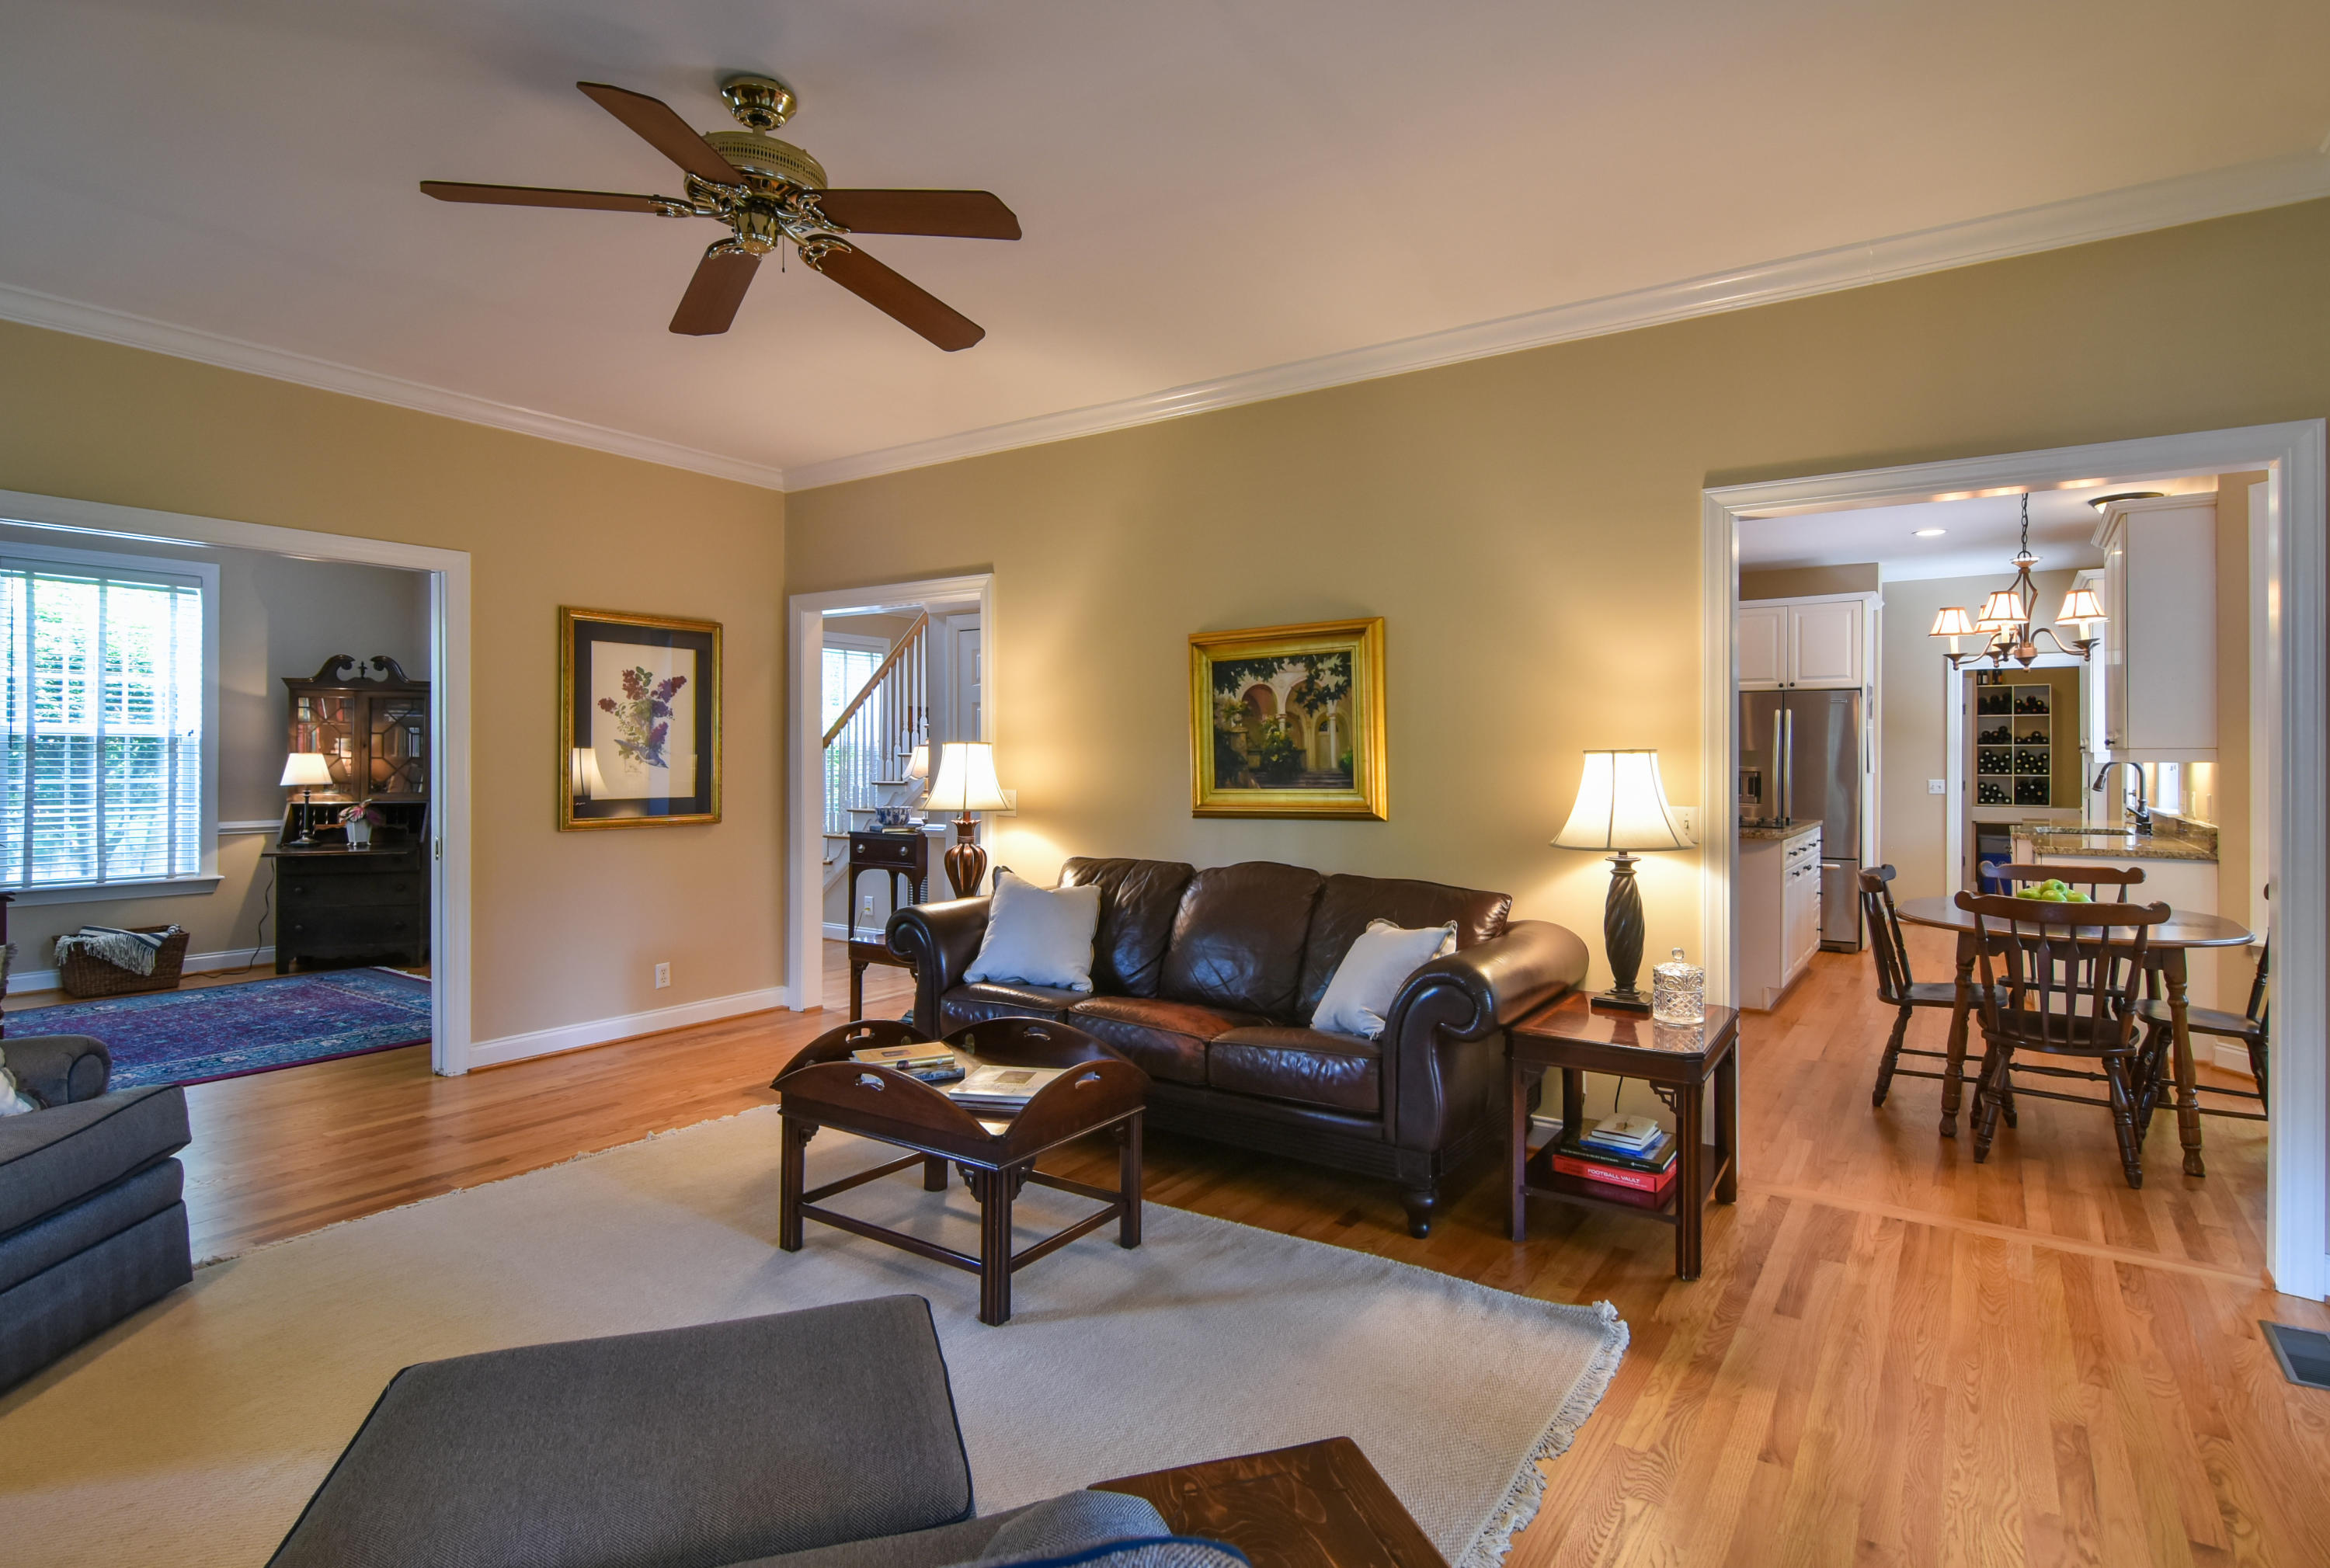 Somerset Point Homes For Sale - 690 Cain, Mount Pleasant, SC - 11